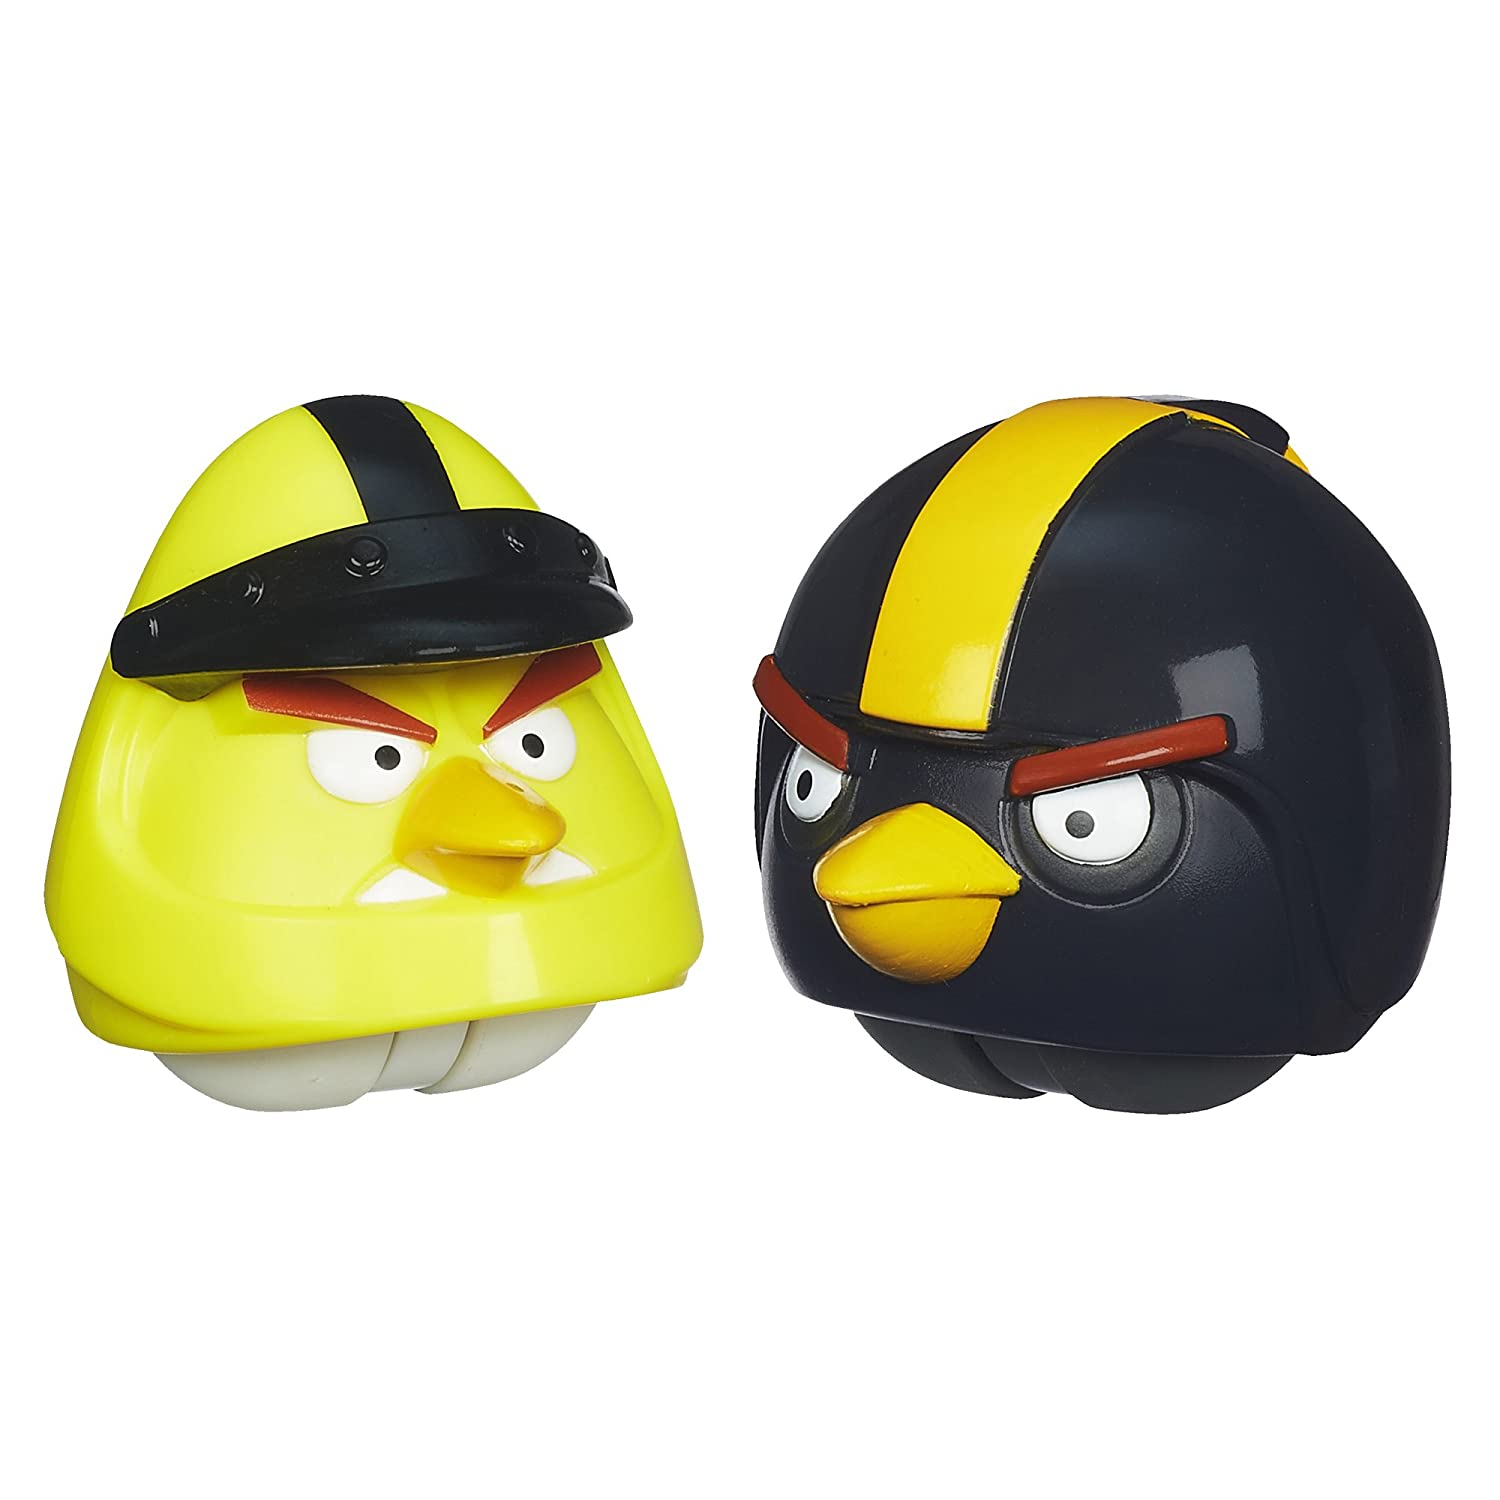 Angry Birds Playskool Heroes Angry Birds Go Yellow Bird and Black Bird